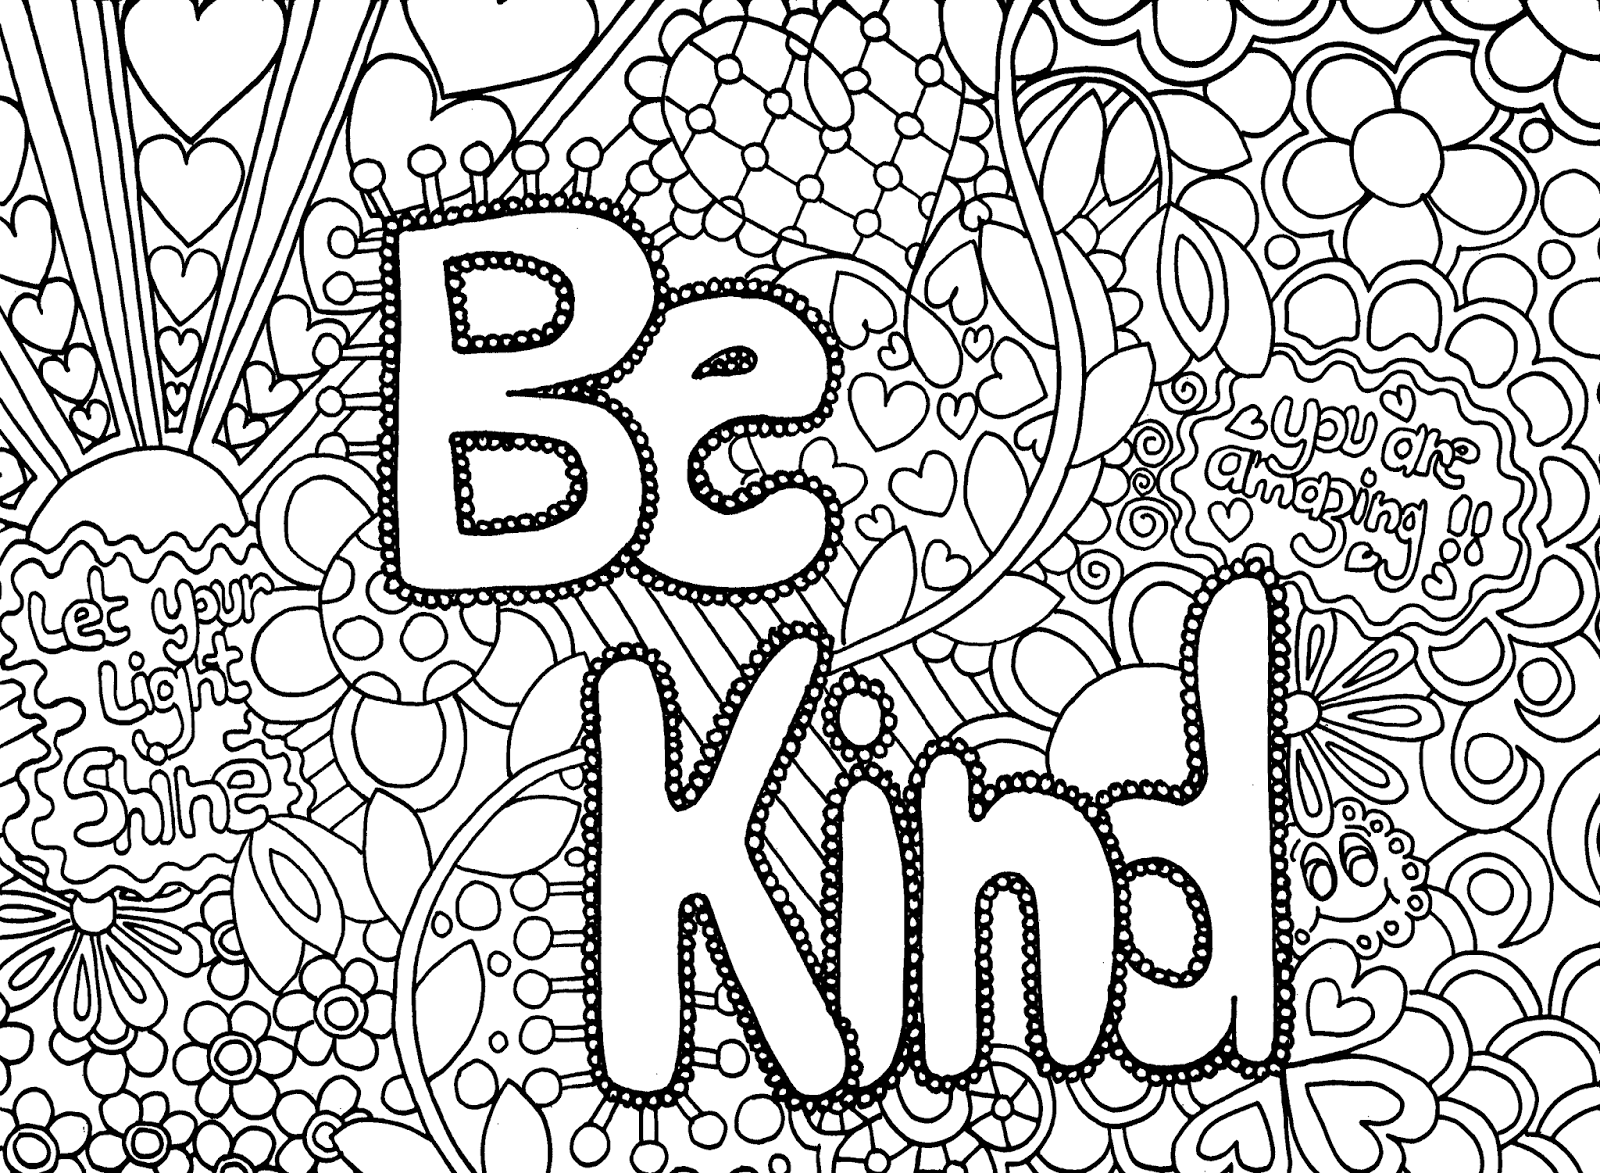 Coloring Pages For Teens With Words